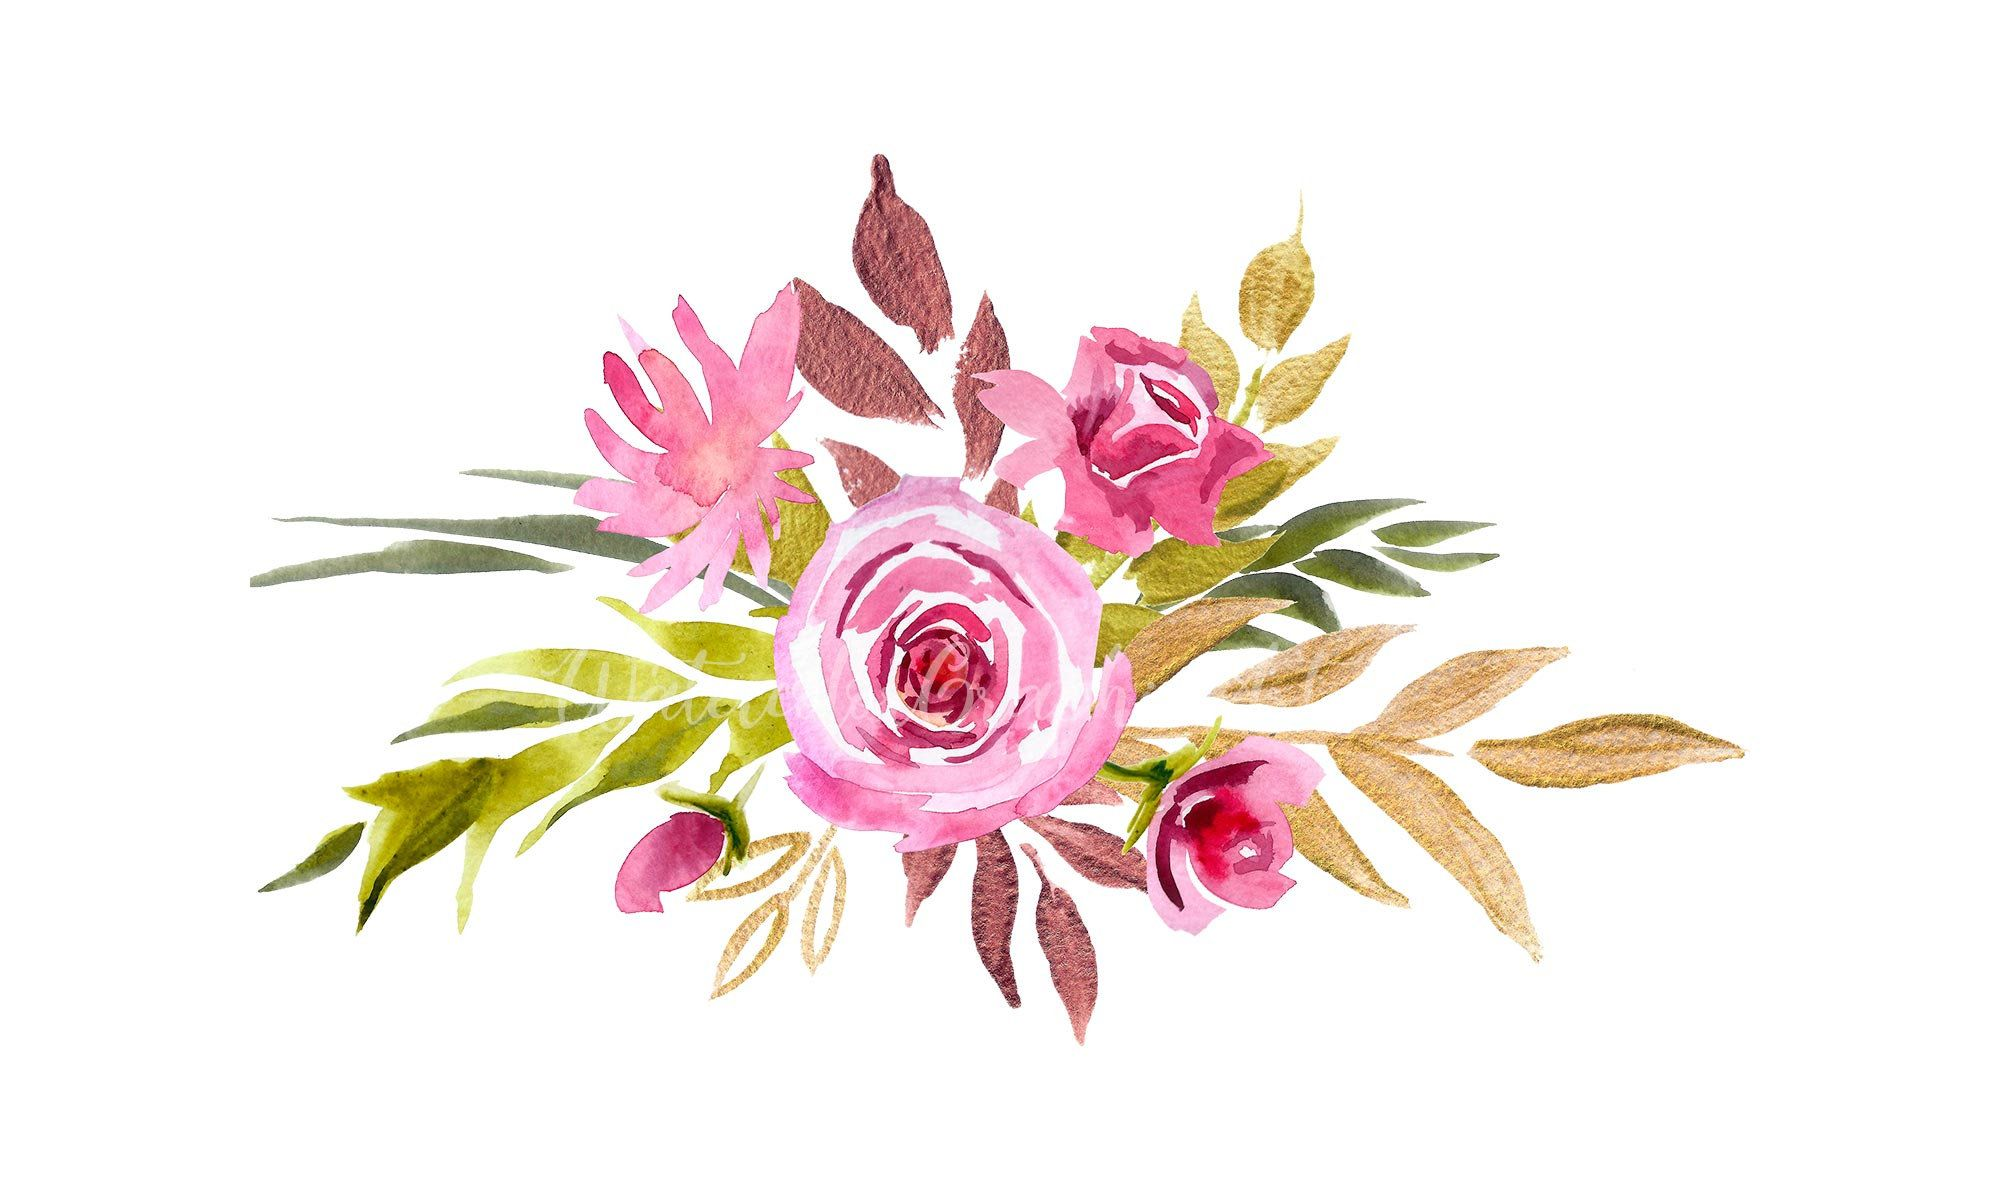 Watercolor Bouquet Of Pink And Gold Flowers Wedding Etsy Watercolor Bouquet Floral Watercolor Wreath Clip Art